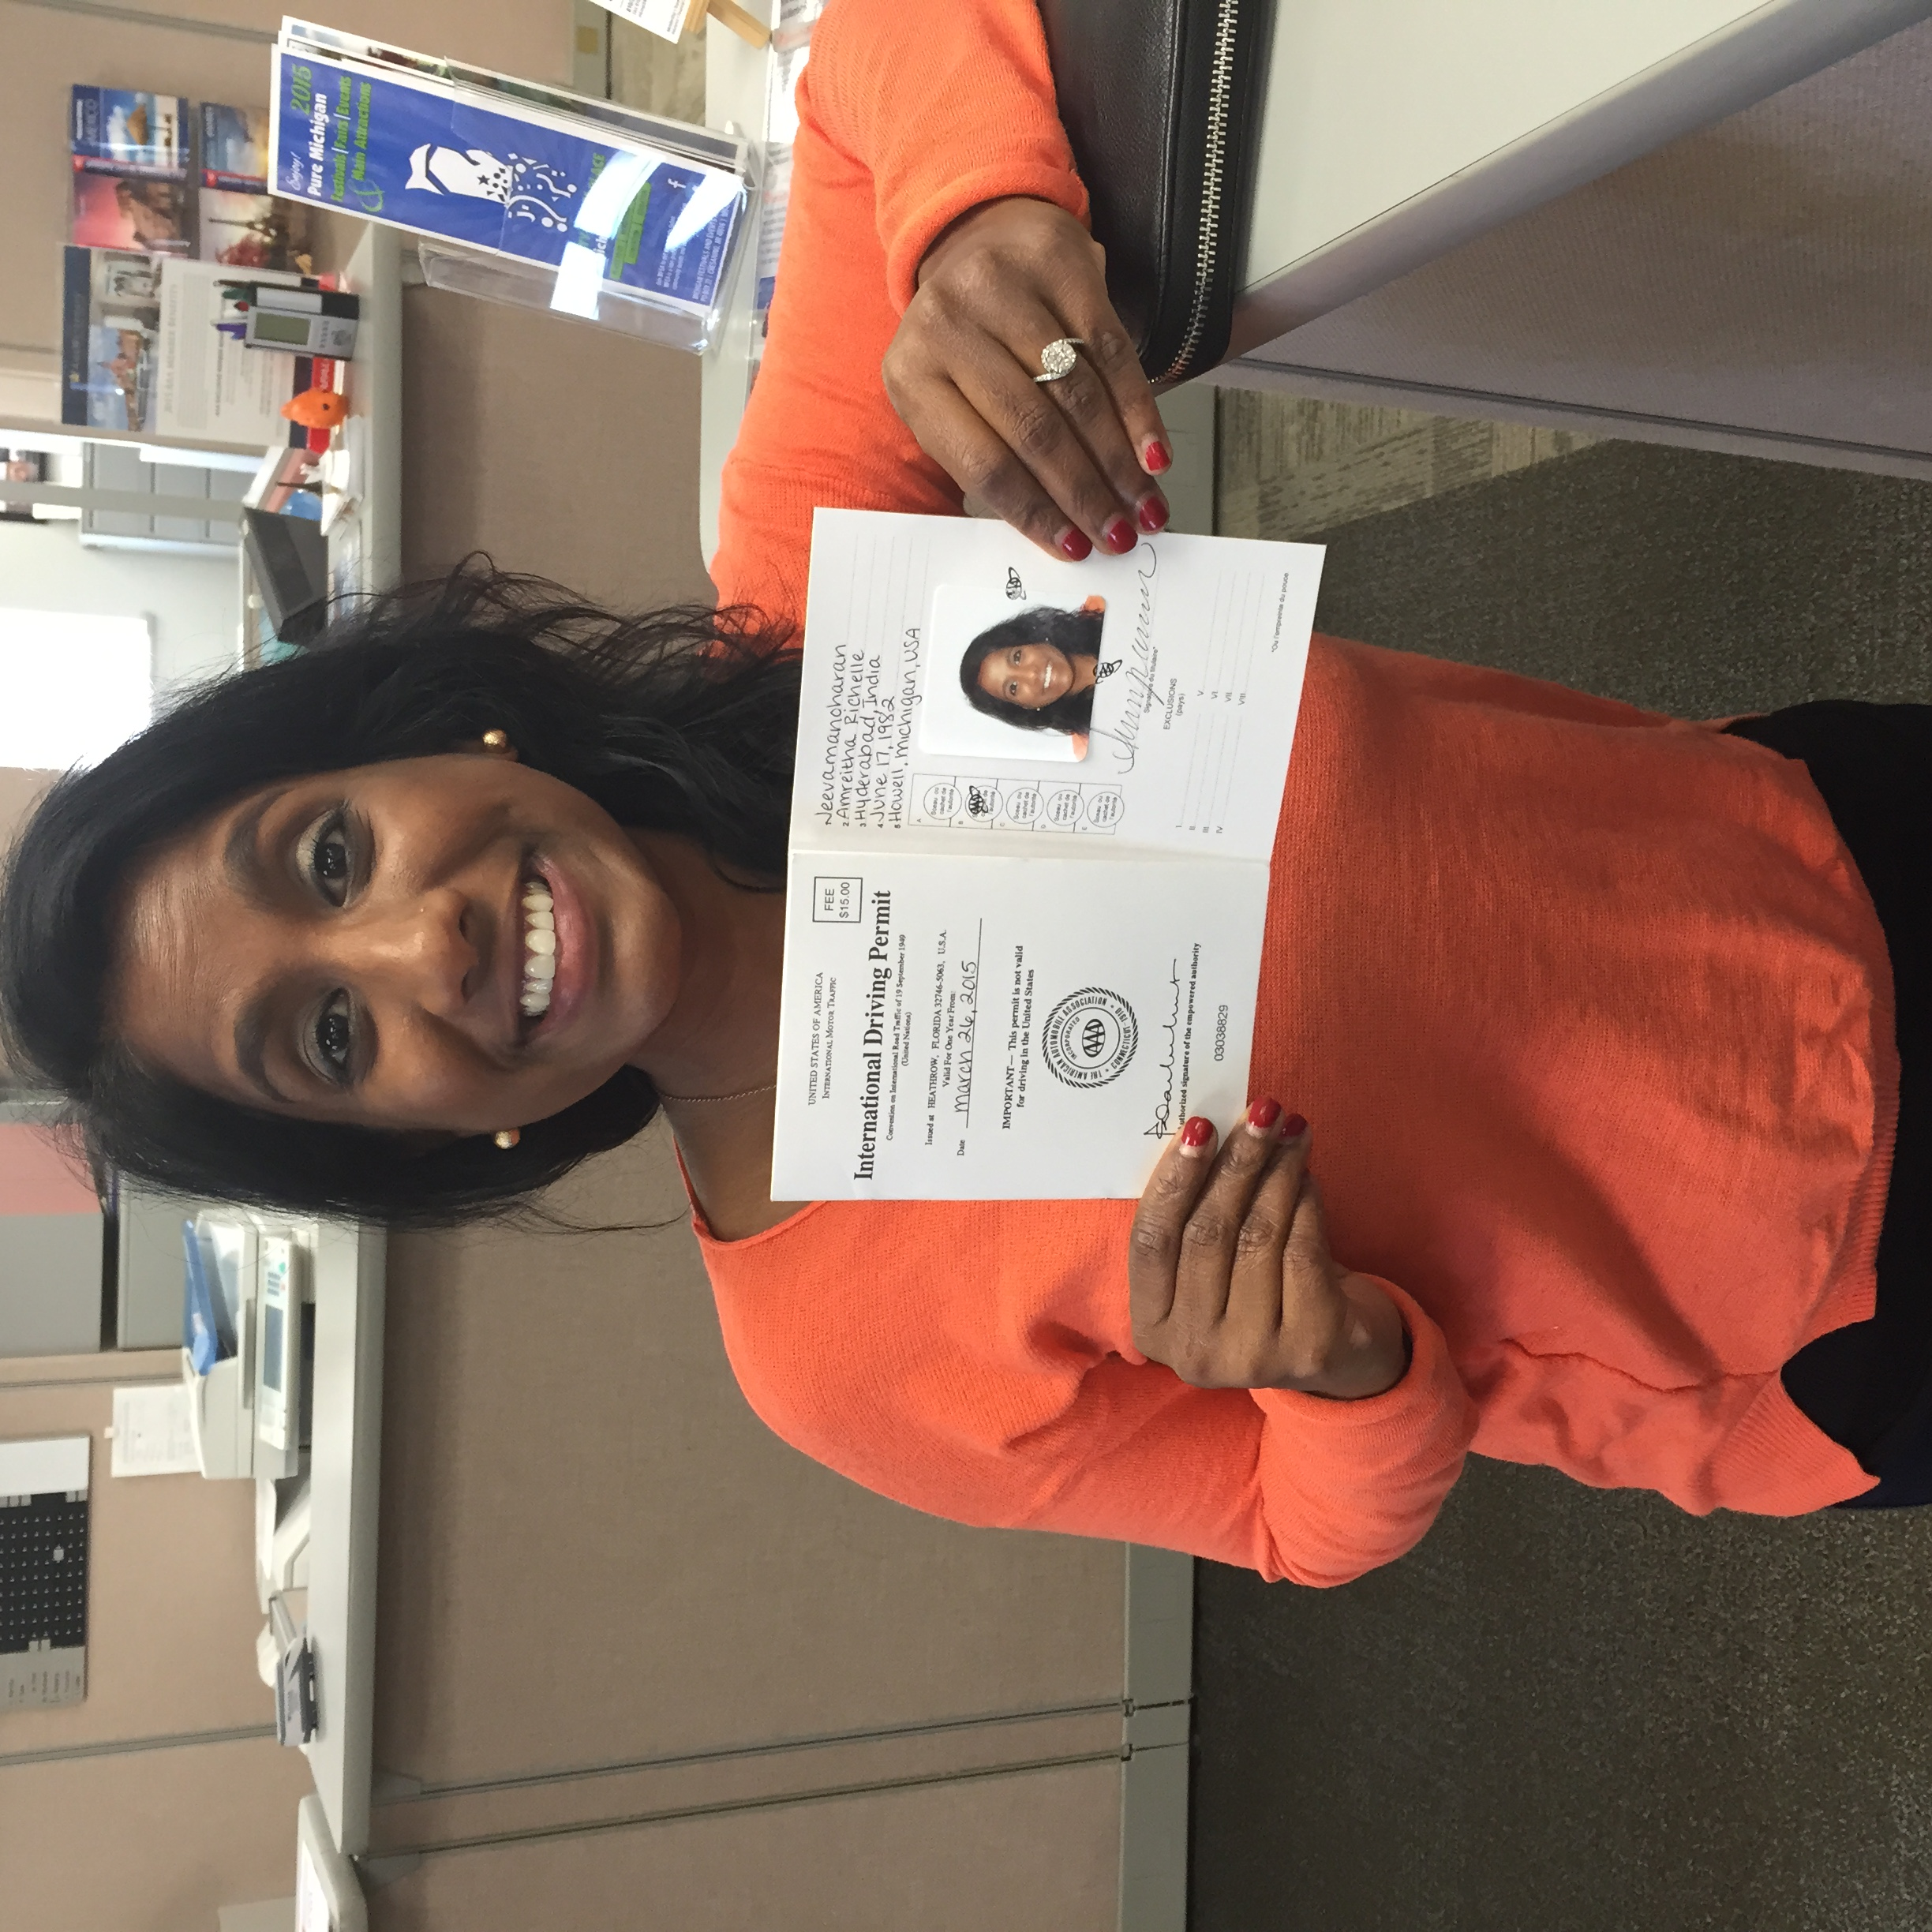 Amreitha successfully obtaining her international driver's license before leaving for Cambodia this week.